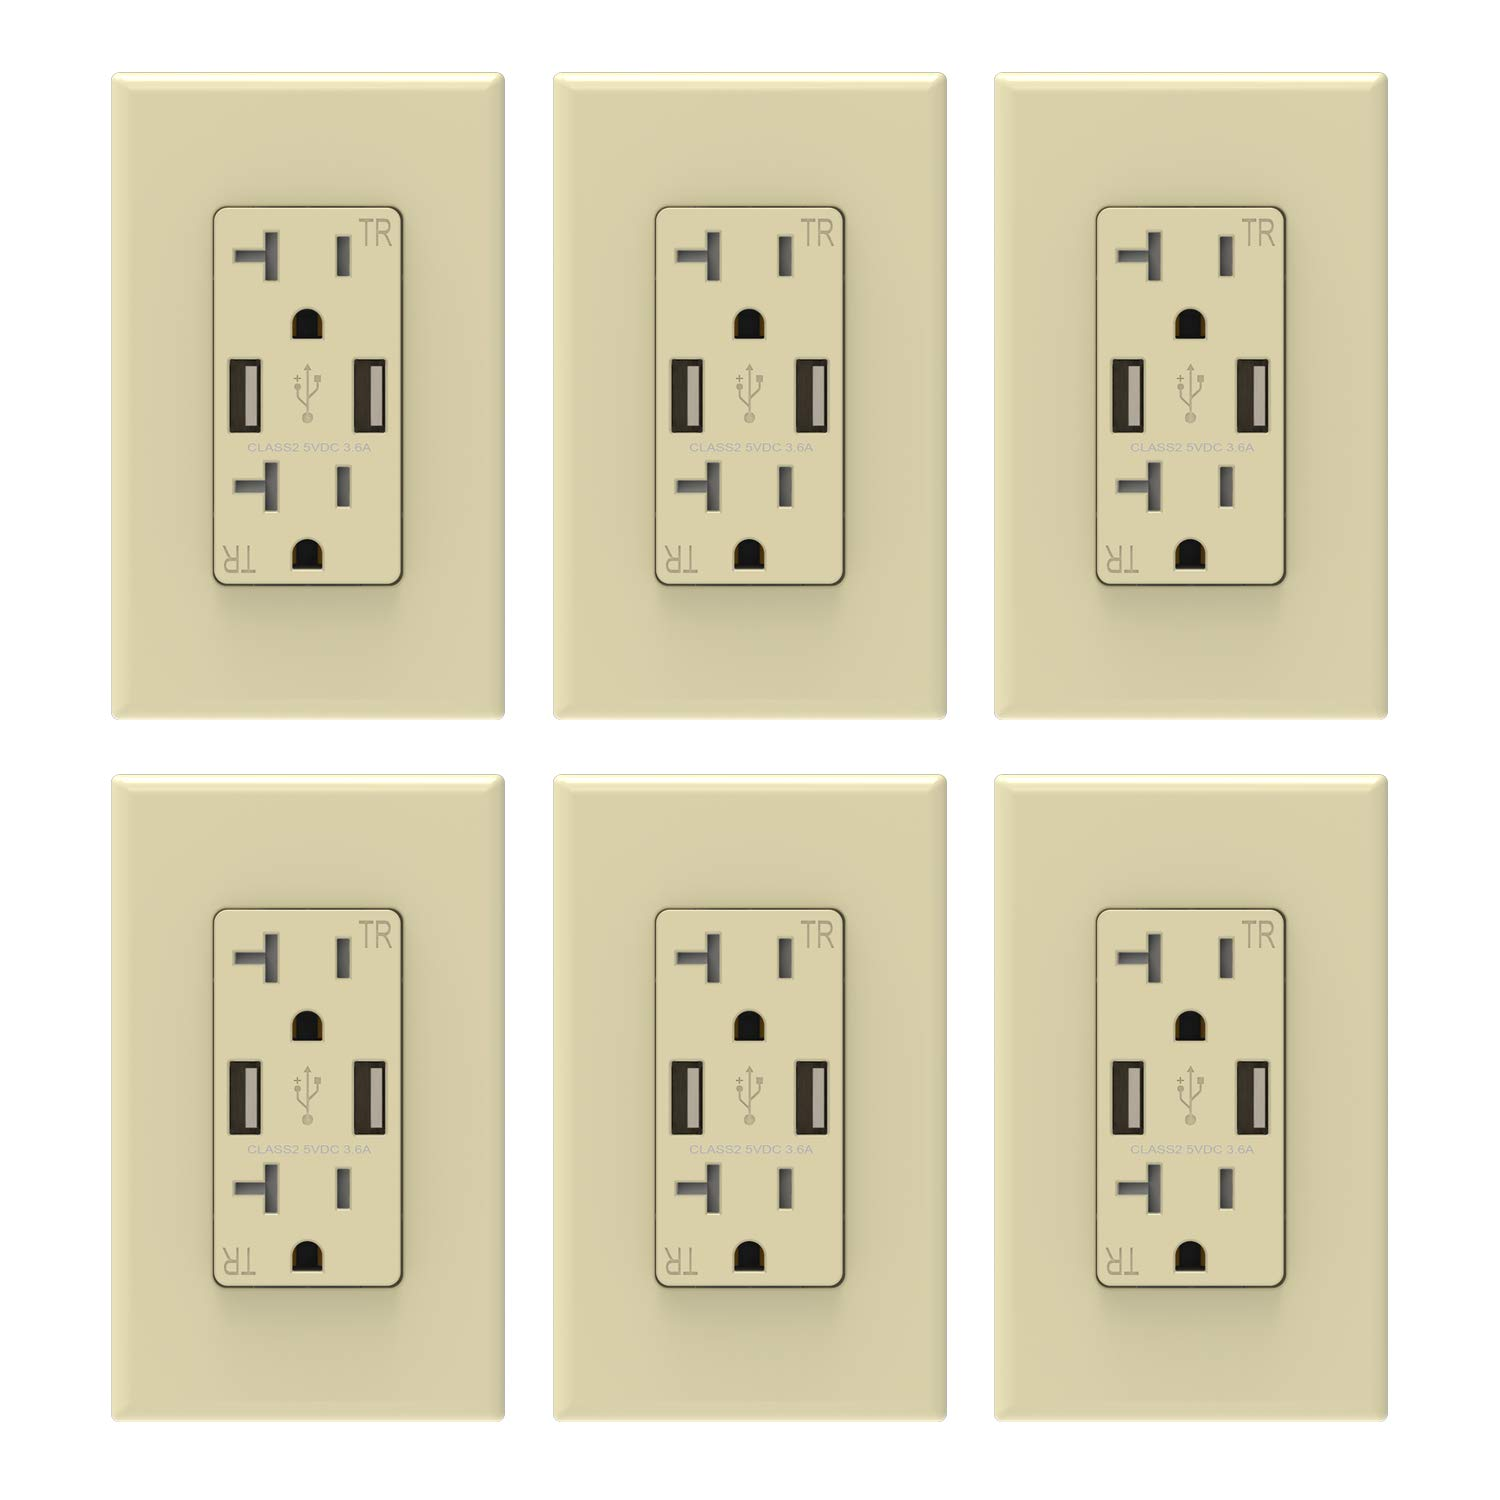 ELEGRP USB Charger Wall Outlet, Dual High Speed 3.6 Amp USB Ports, 20 Amp Duplex Tamper Resistant Receptacle, Wall Plate Included, UL Listed (6)